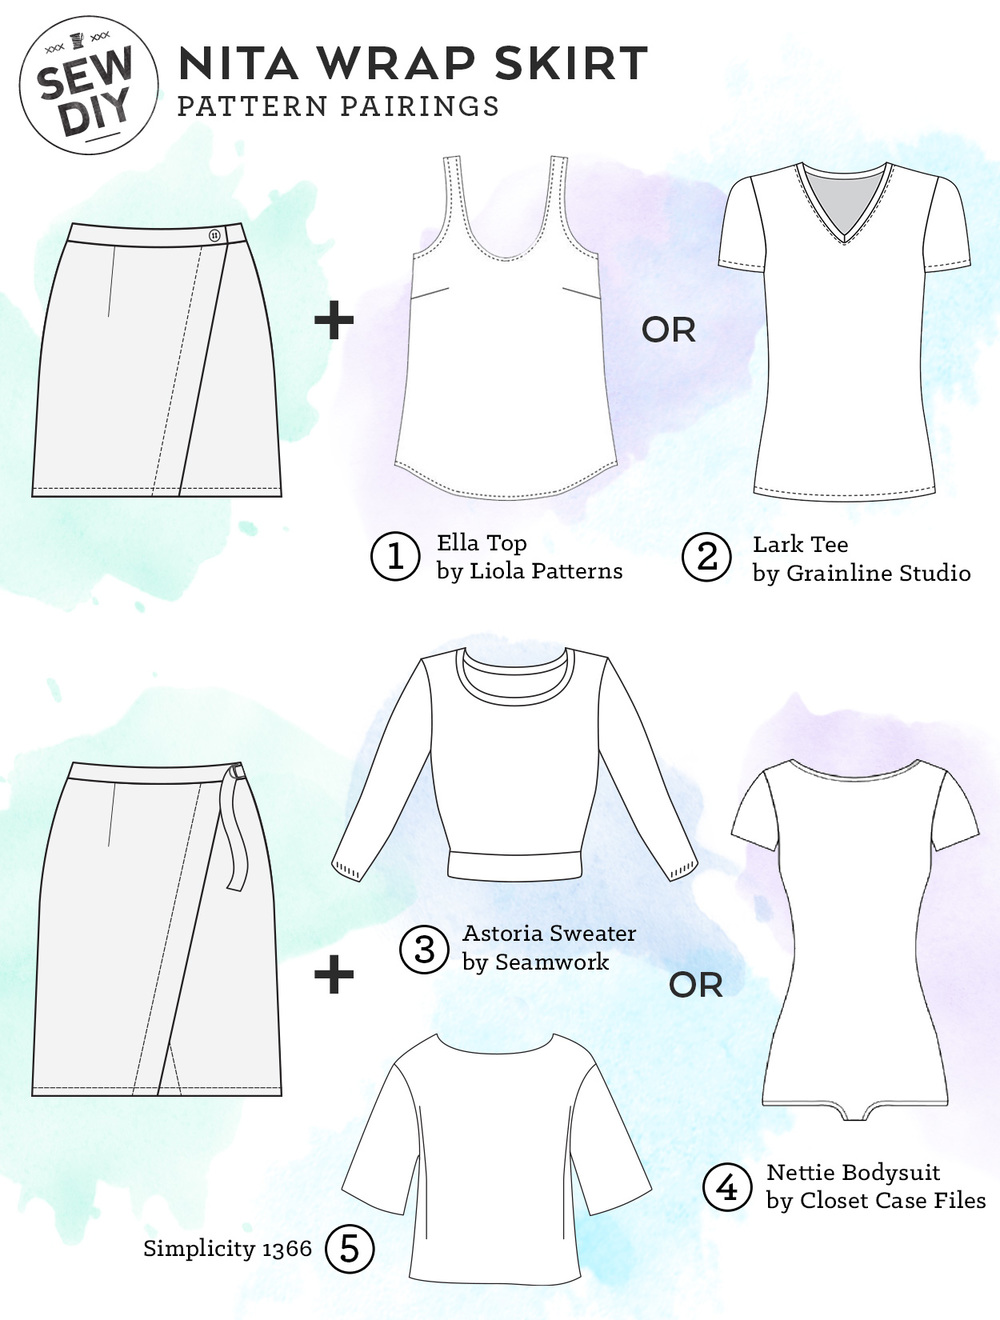 6f0c317e43328 Nita Wrap Skirt Pattern Pairings from Sew DIY. Click to see five perfect  sewing patterns